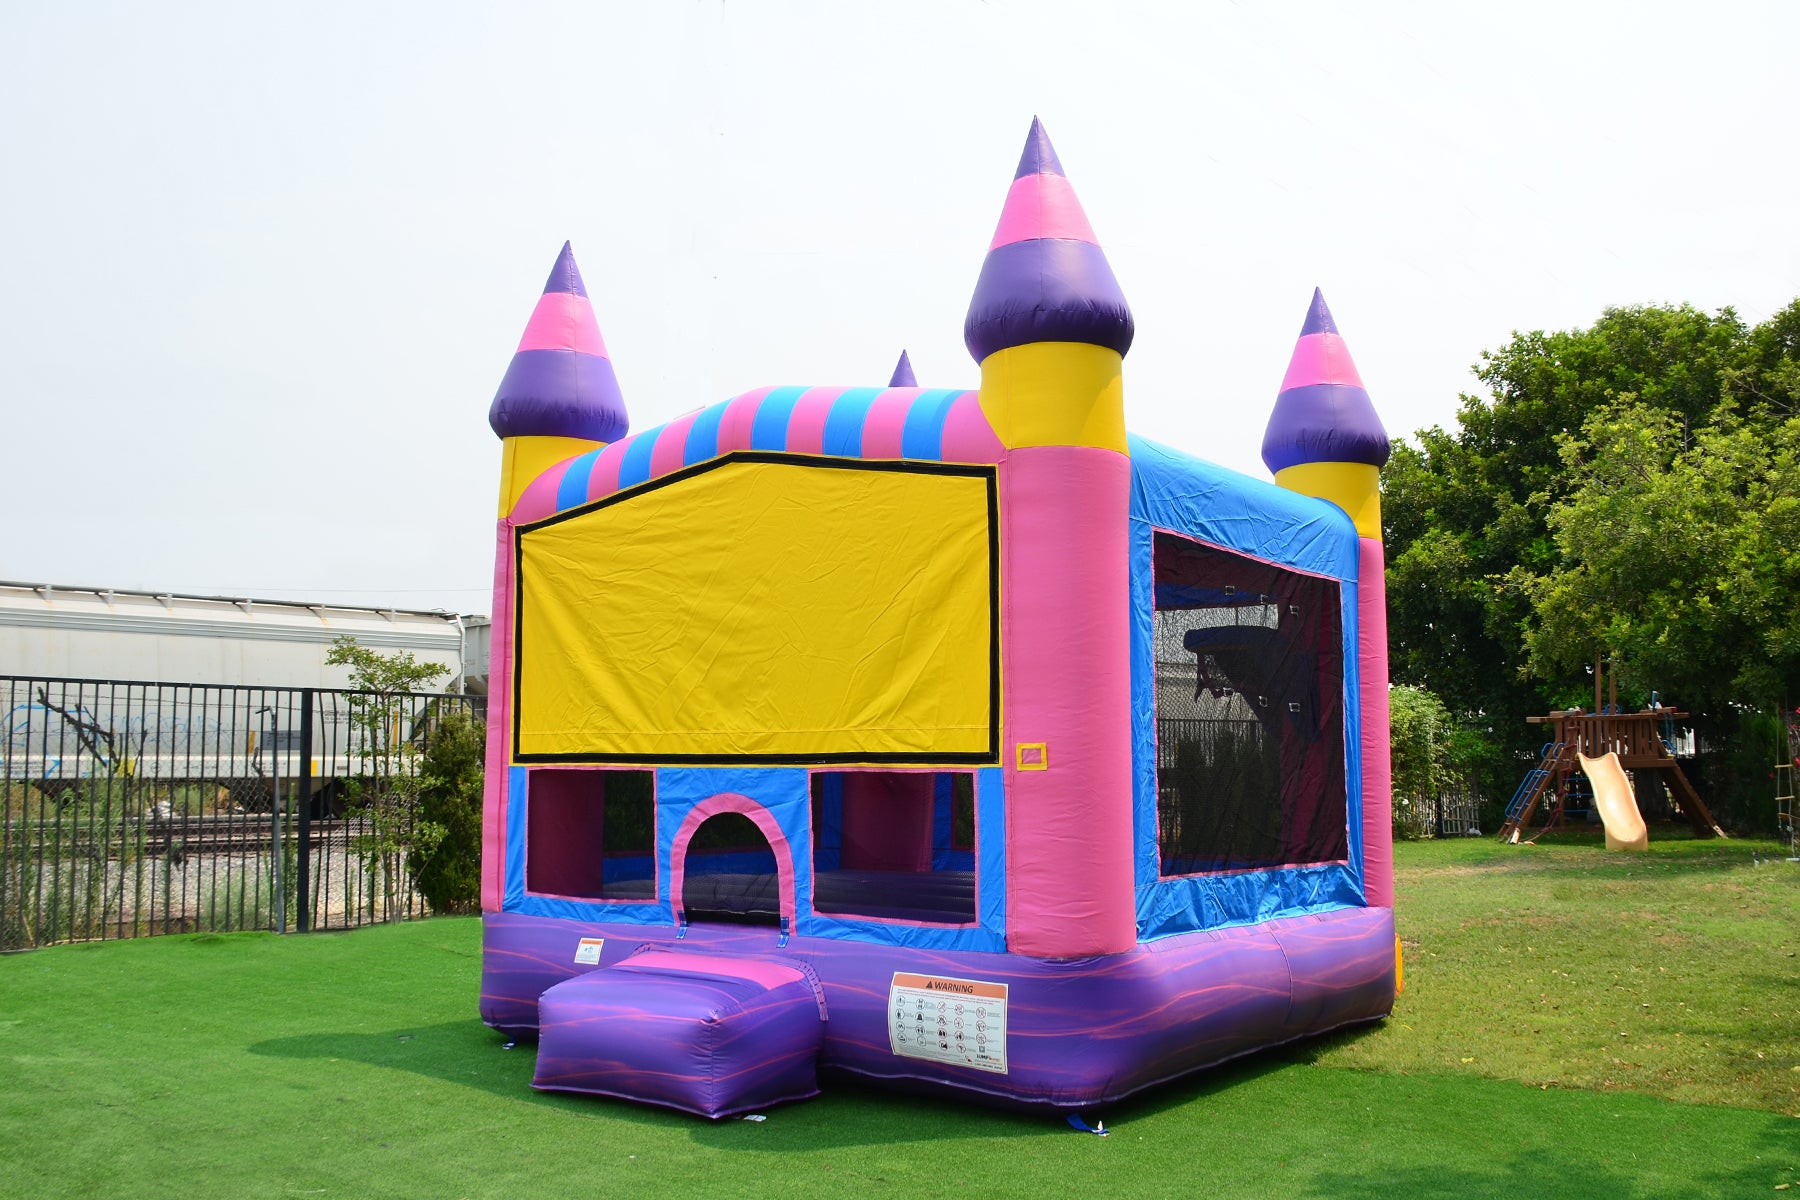 JumpOrange Commercial Grade Inflatable Cotton Candy Bounce House Backyard Party Moonwalk Size 13x13